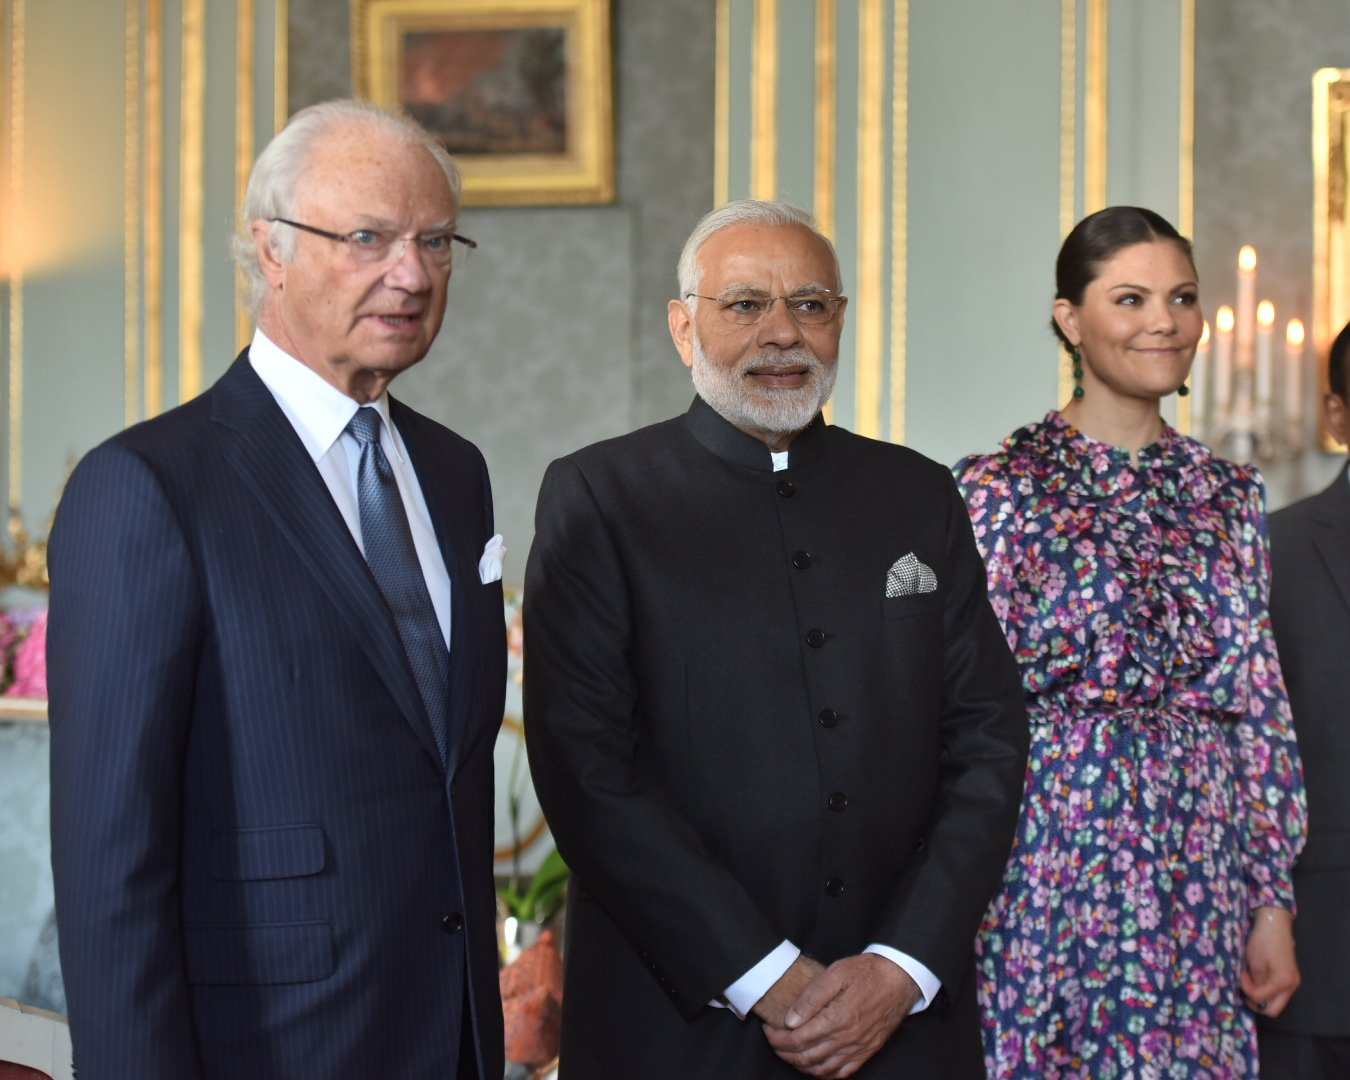 Honoured to call on His Majesty King Carl XVI Gustaf in Stockholm. We had a wonderful interaction on various issues. https://t.co/uOYPKkMZmX